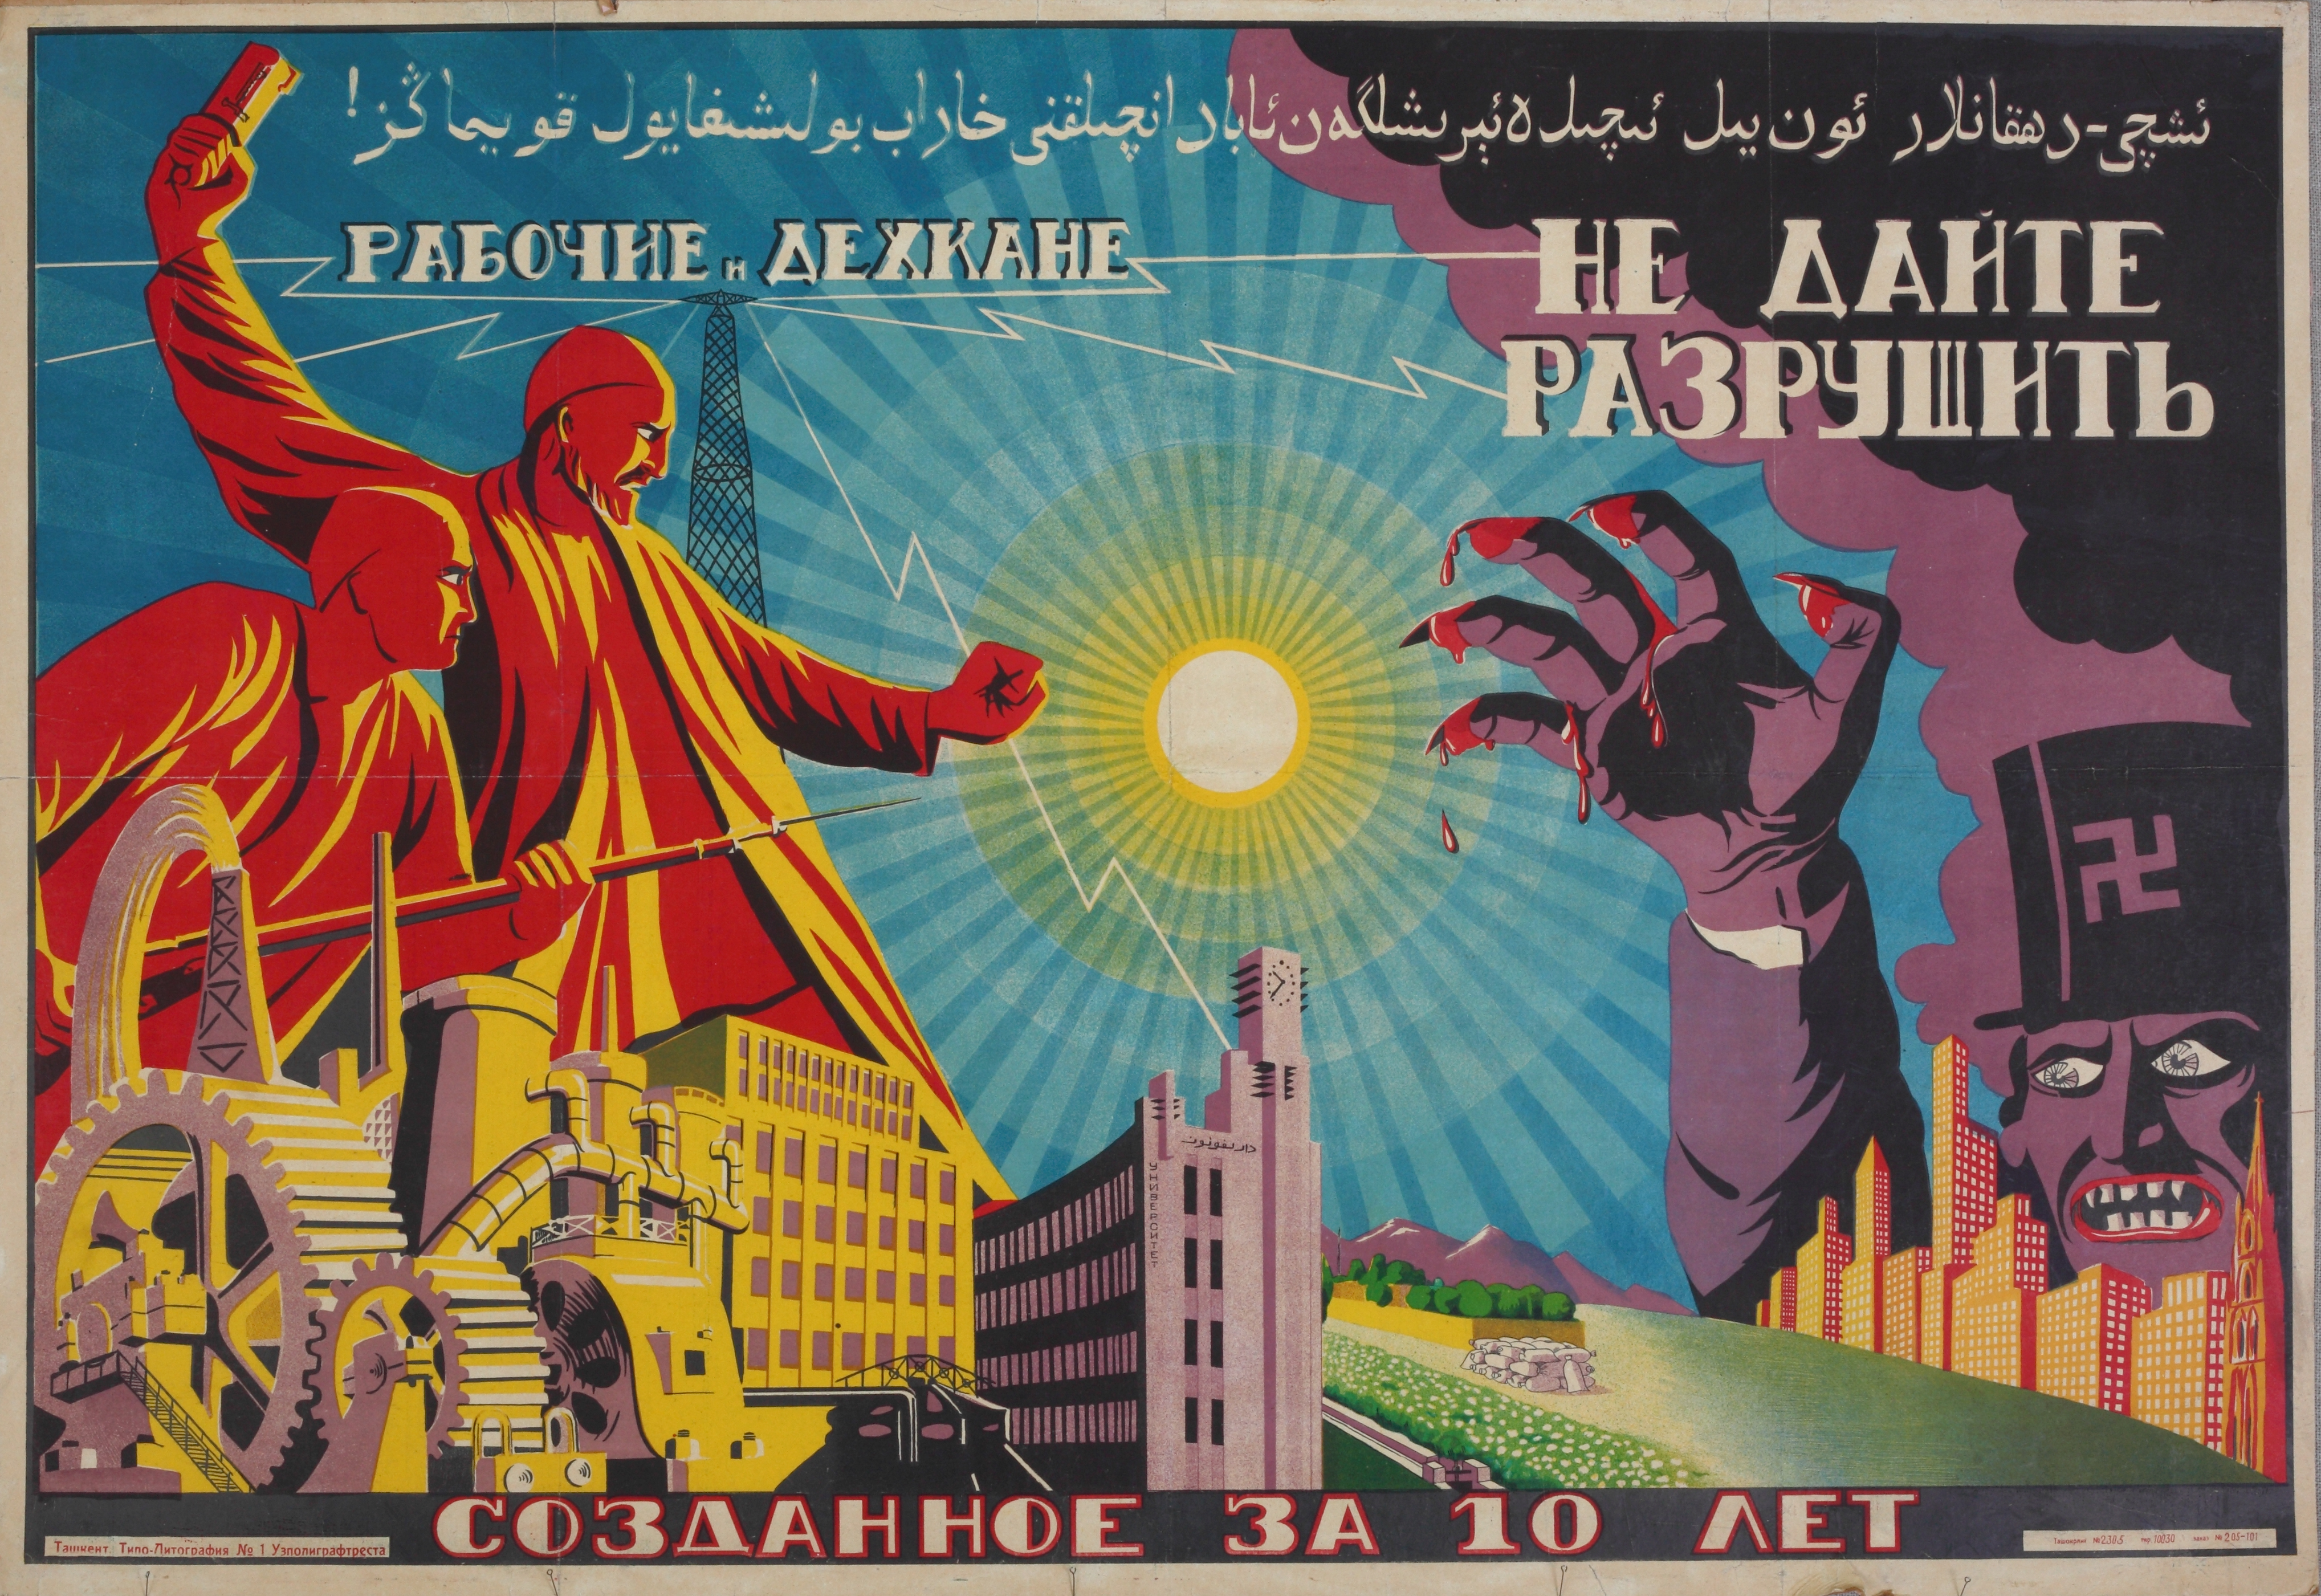 """Workers and Peasants: Don't let them destroy what was created over 10 years"" – Russian and Uzbek, Tashkent, 1927 (SCMCHR)"